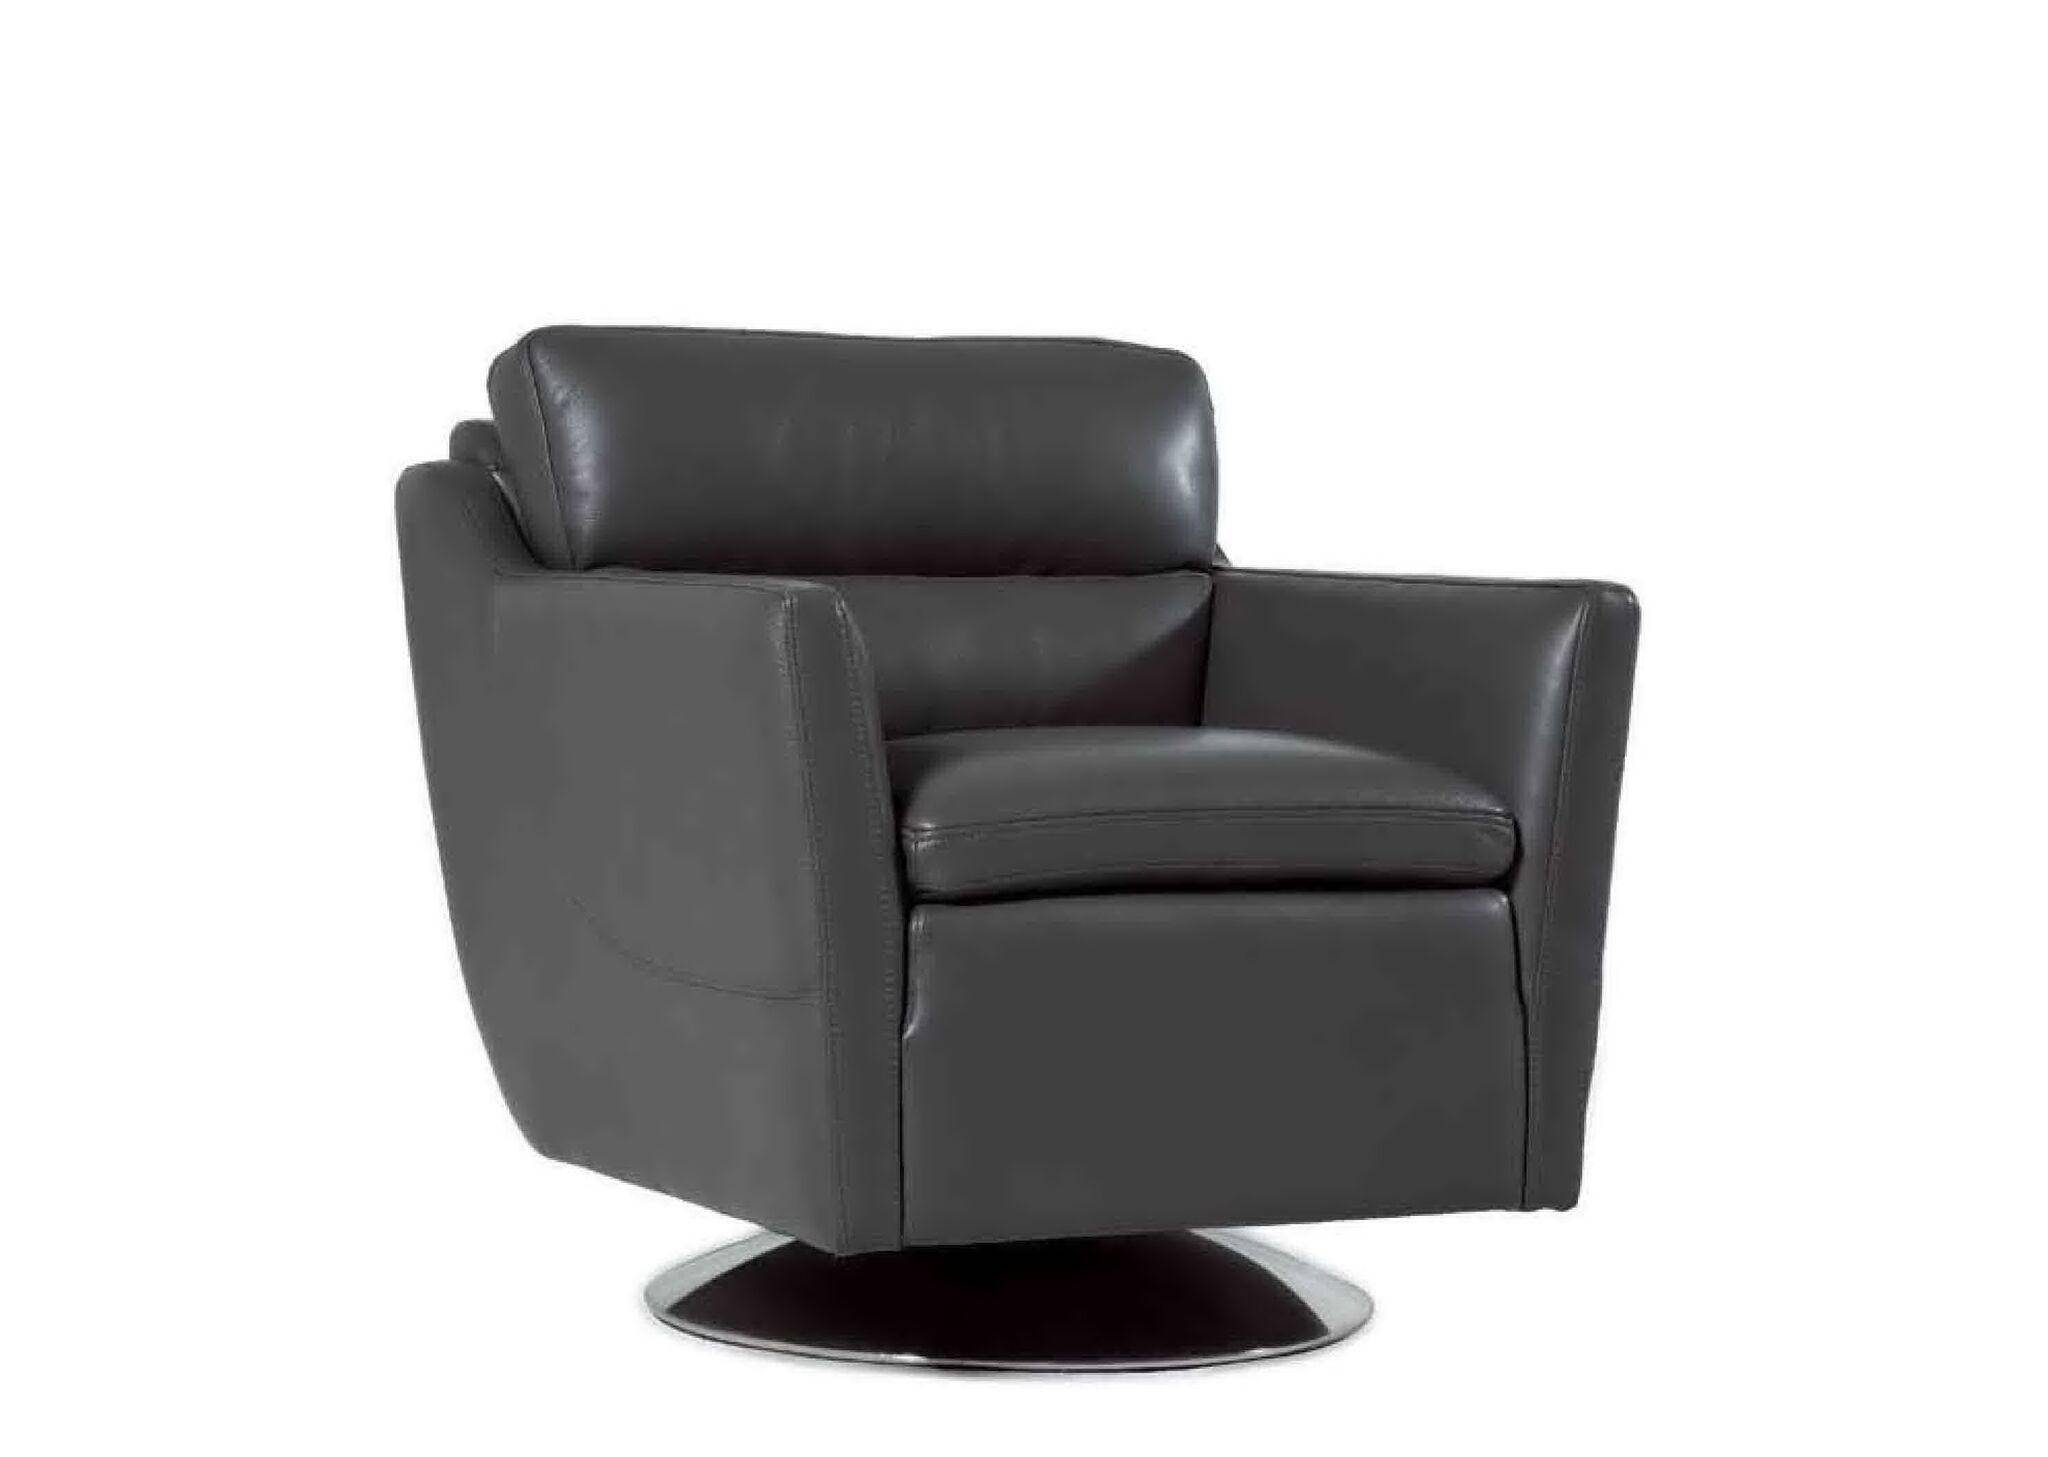 Tremendous Moroni Clio 528 Cool Grey Top Grain Leather Upholstery Mid Ncnpc Chair Design For Home Ncnpcorg